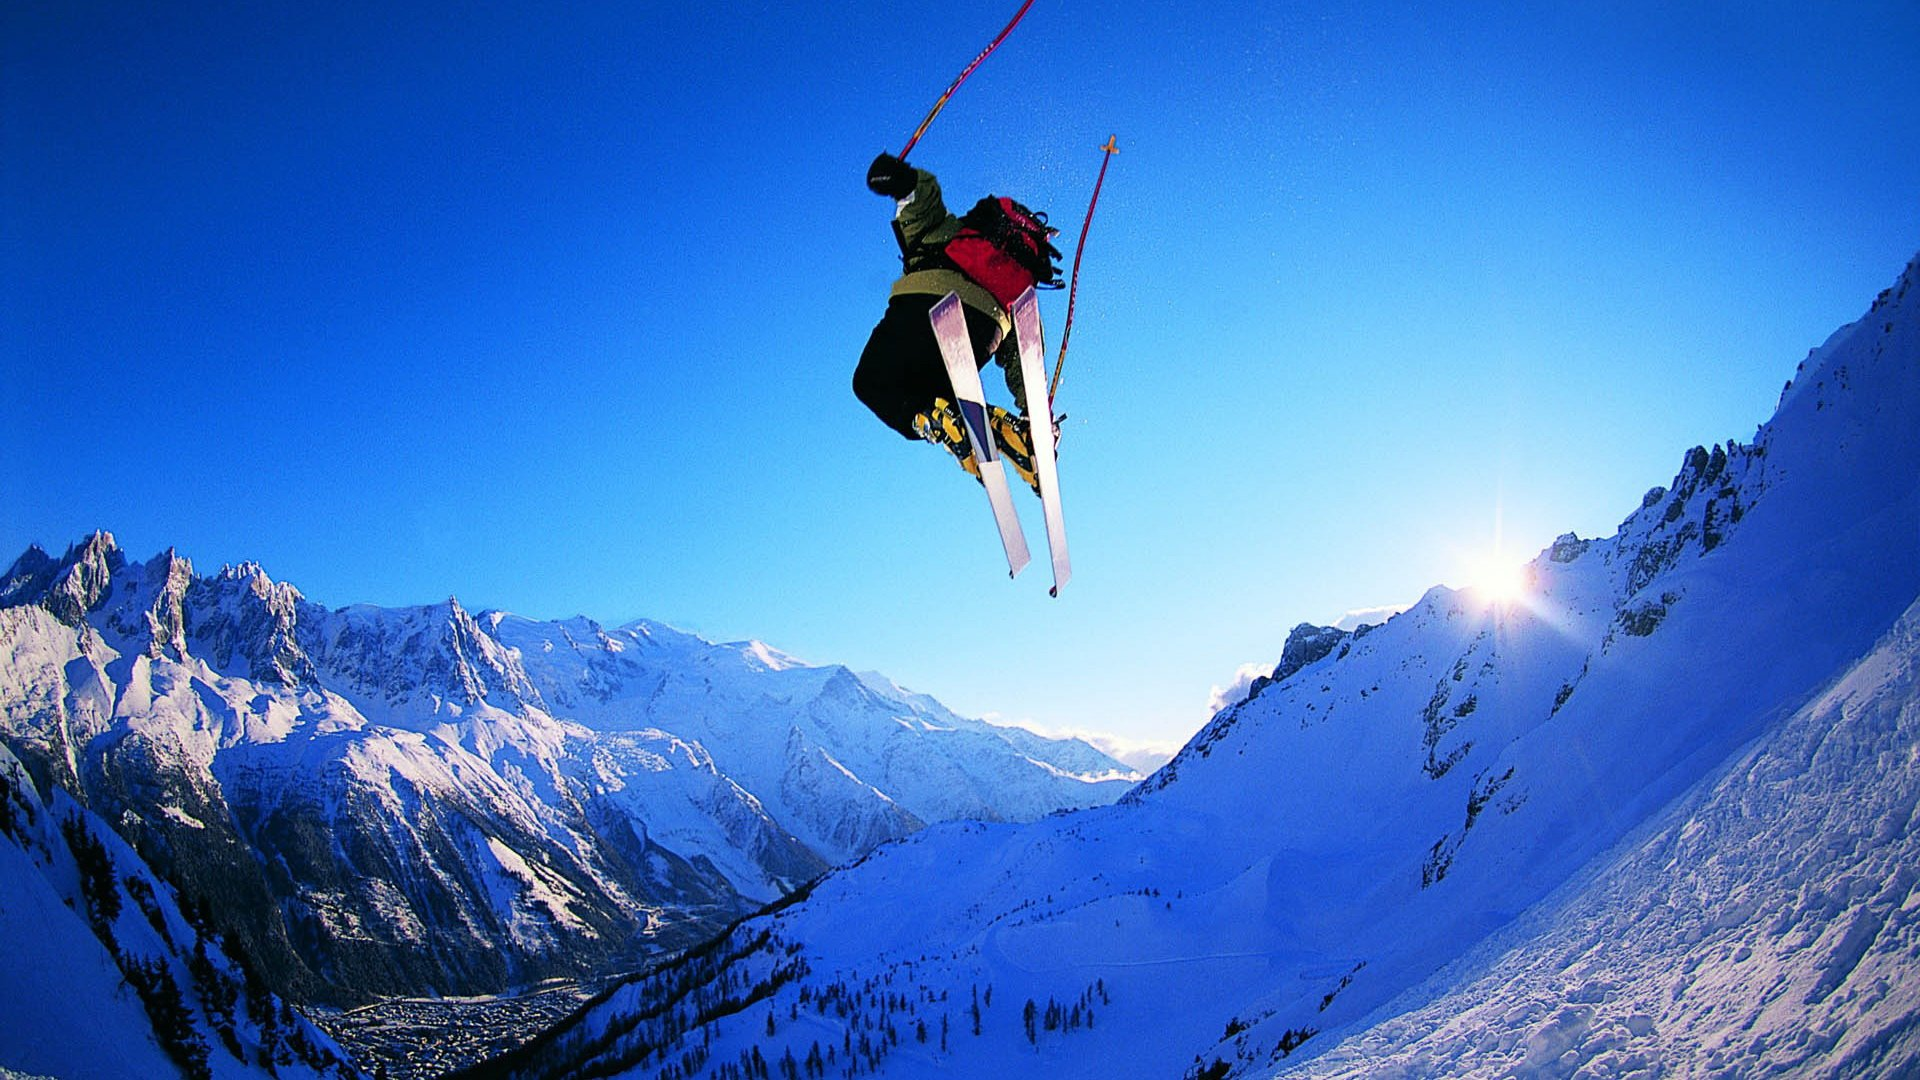 Cool-Skiing-Full-HD-Skiing-Backgrounds-NZ-wallpaper-wpc9003807